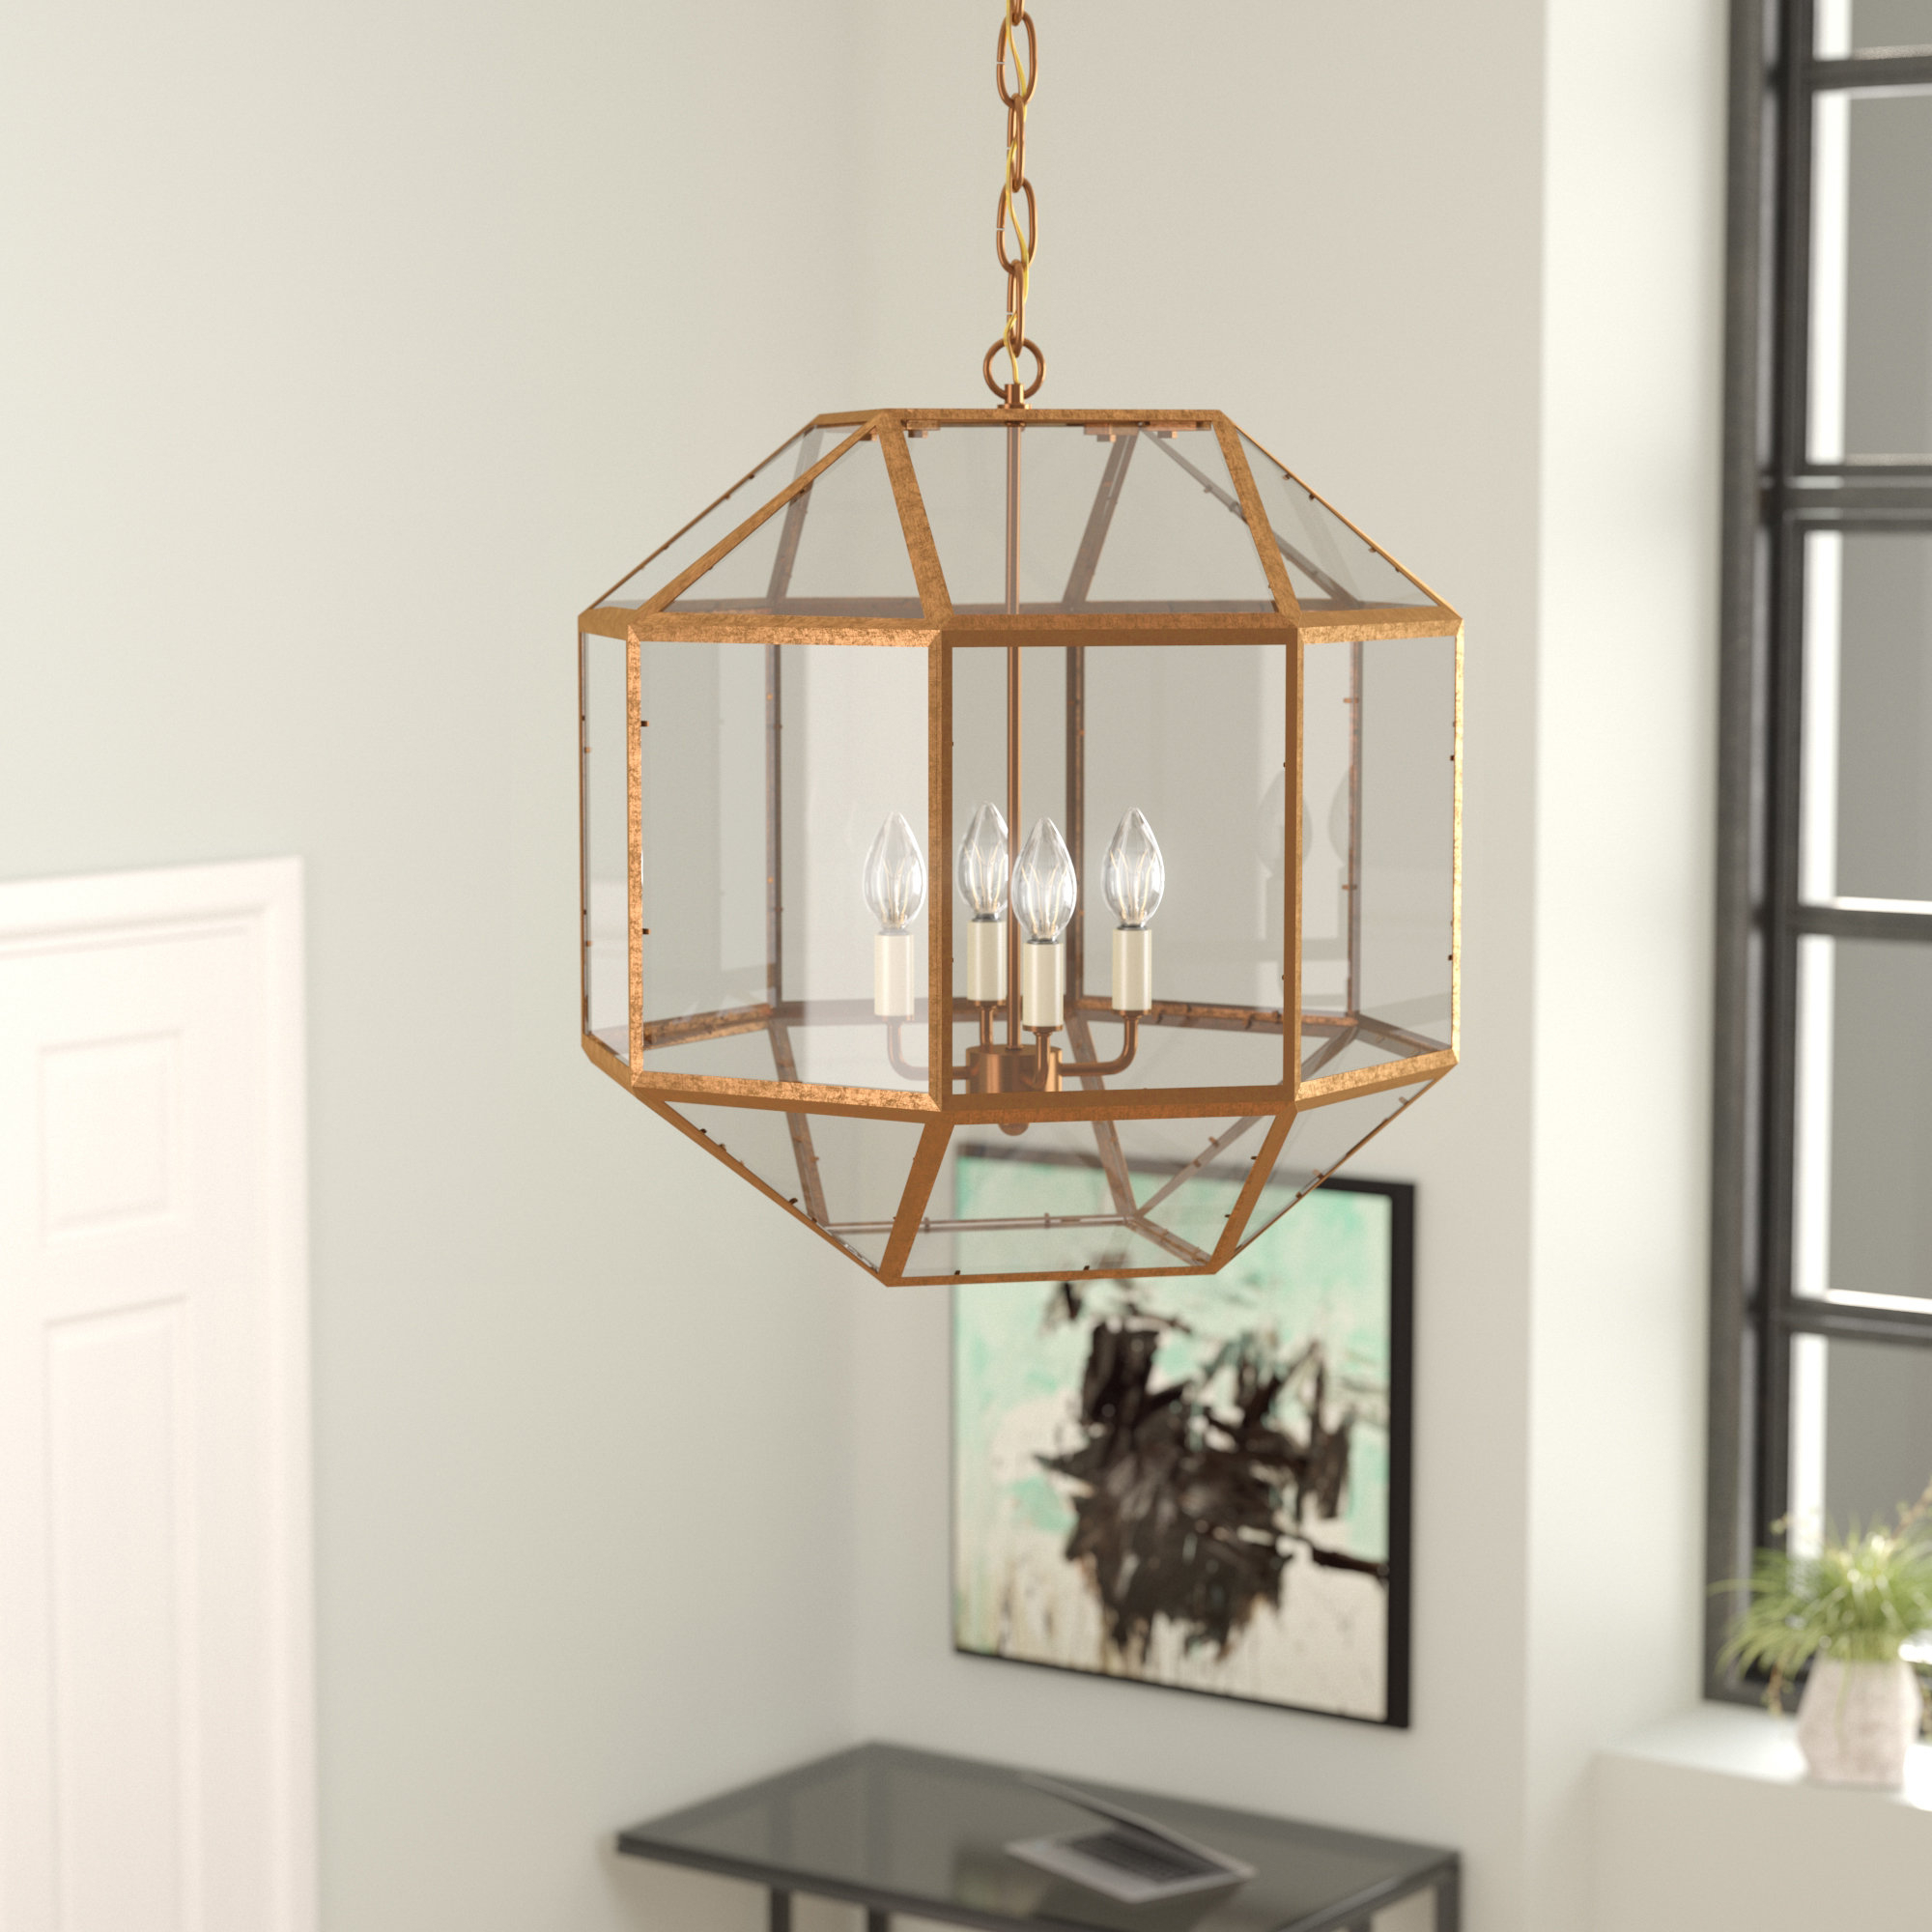 [%Geometric Chandeliers Sale – Up To 65% Off Until September Pertaining To Widely Used Reidar 4 Light Geometric Chandeliers|Reidar 4 Light Geometric Chandeliers Regarding Well Liked Geometric Chandeliers Sale – Up To 65% Off Until September|Well Known Reidar 4 Light Geometric Chandeliers Regarding Geometric Chandeliers Sale – Up To 65% Off Until September|Current Geometric Chandeliers Sale – Up To 65% Off Until September Within Reidar 4 Light Geometric Chandeliers%] (View 17 of 25)